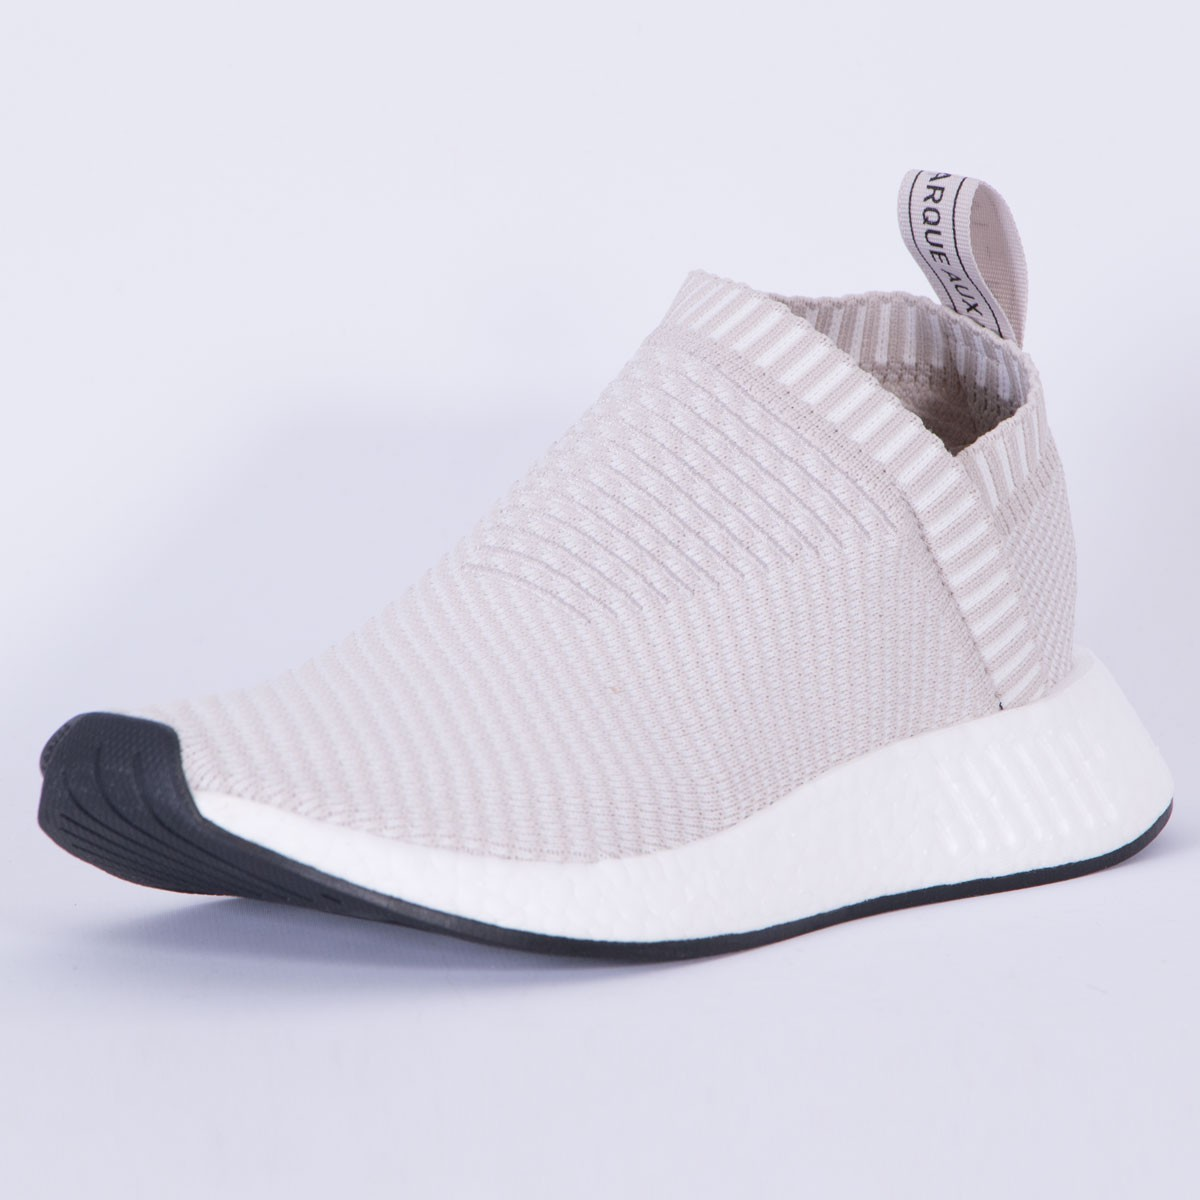 adidas nmd cs2 damen